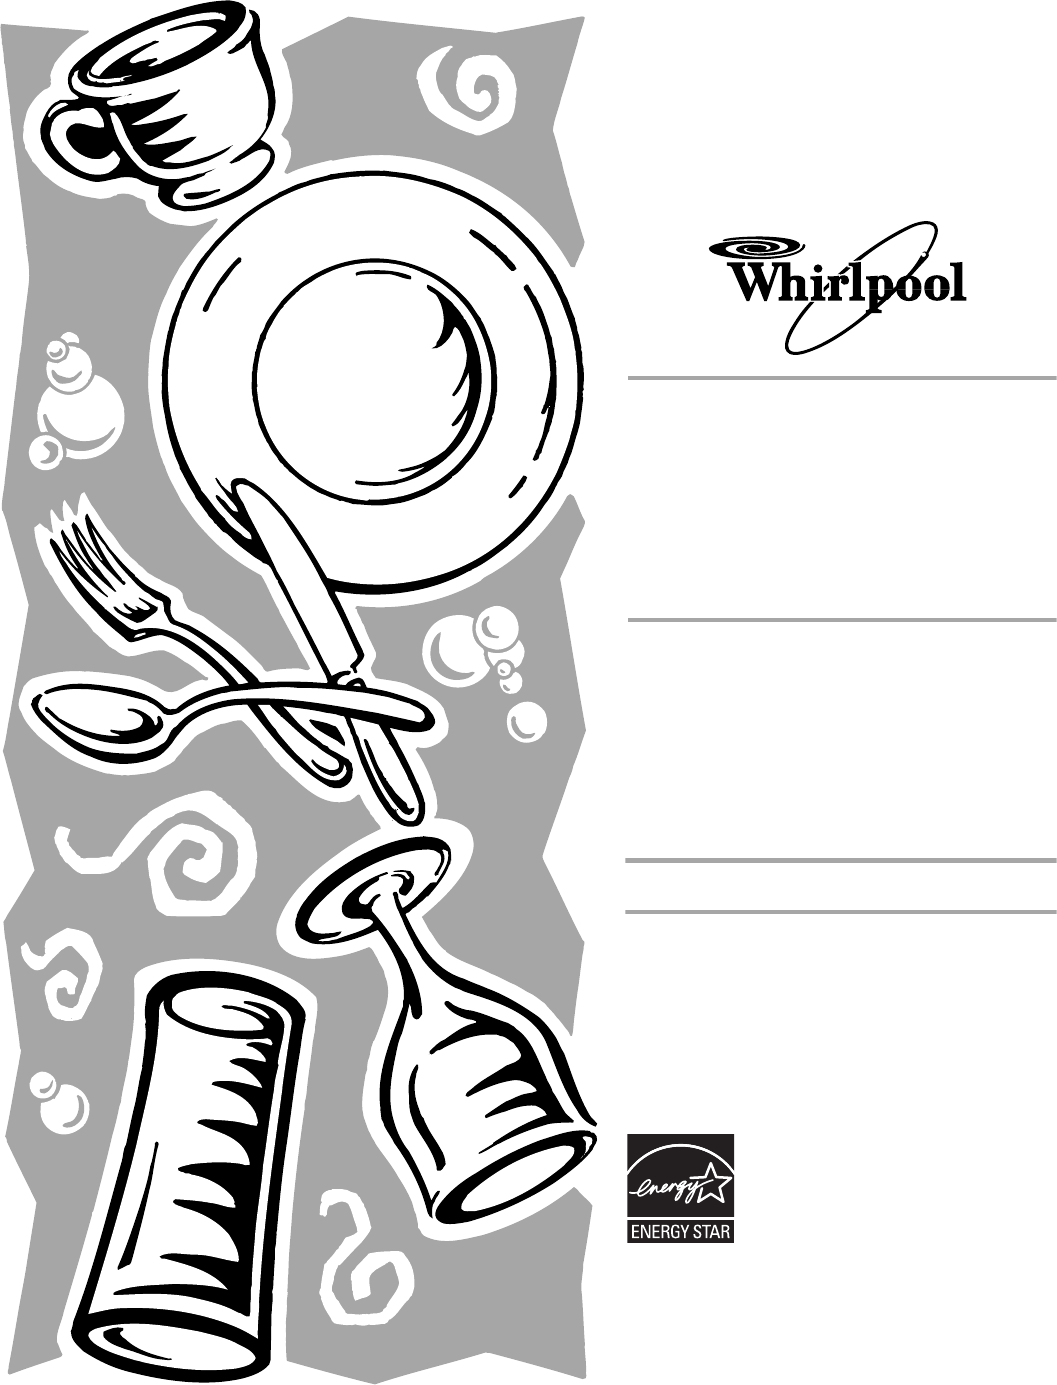 Whirlpool Dishwasher Du User Guide